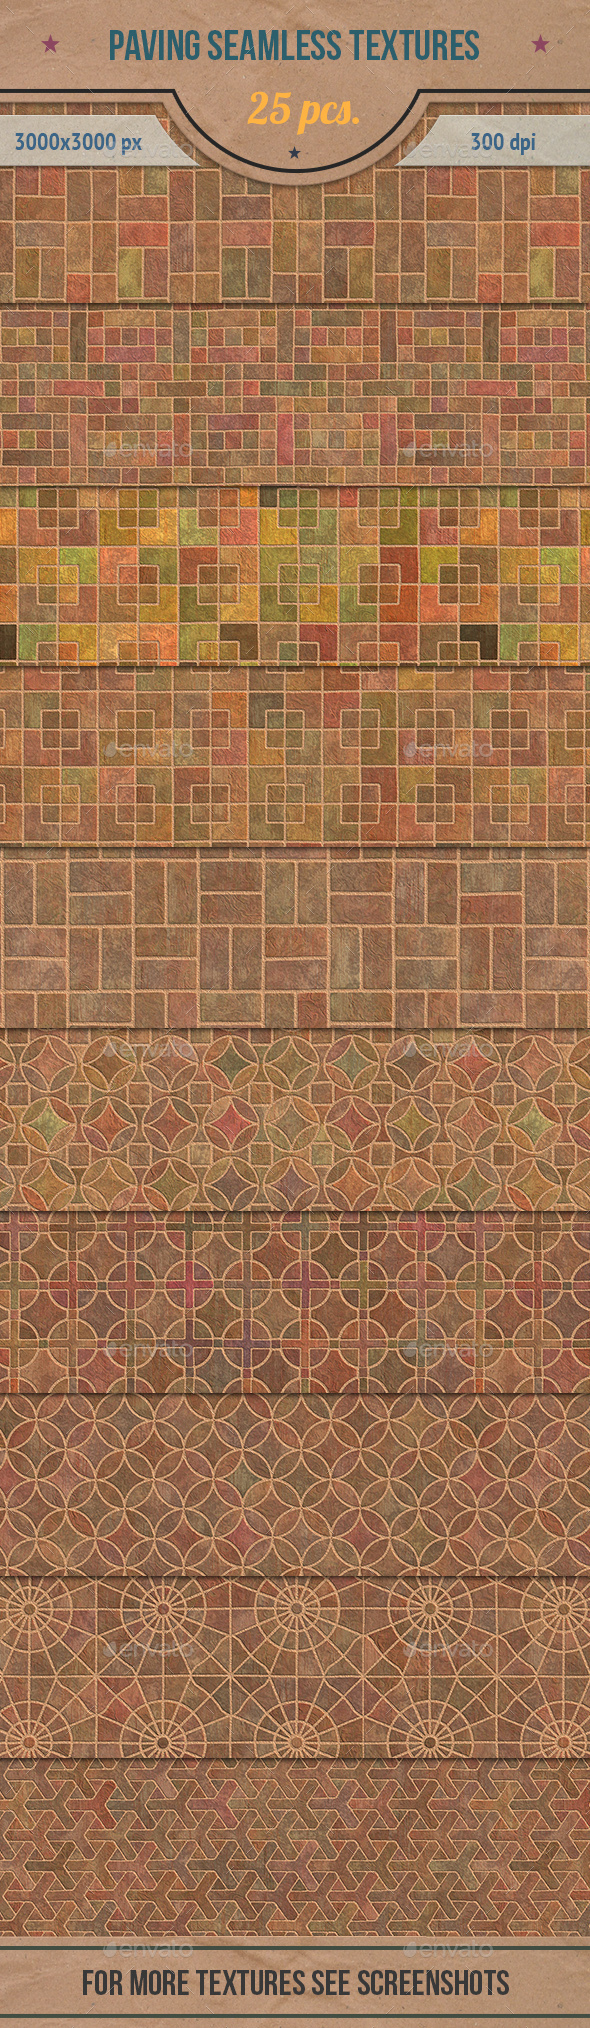 Paving Seamless Textures Pack - Stone Textures